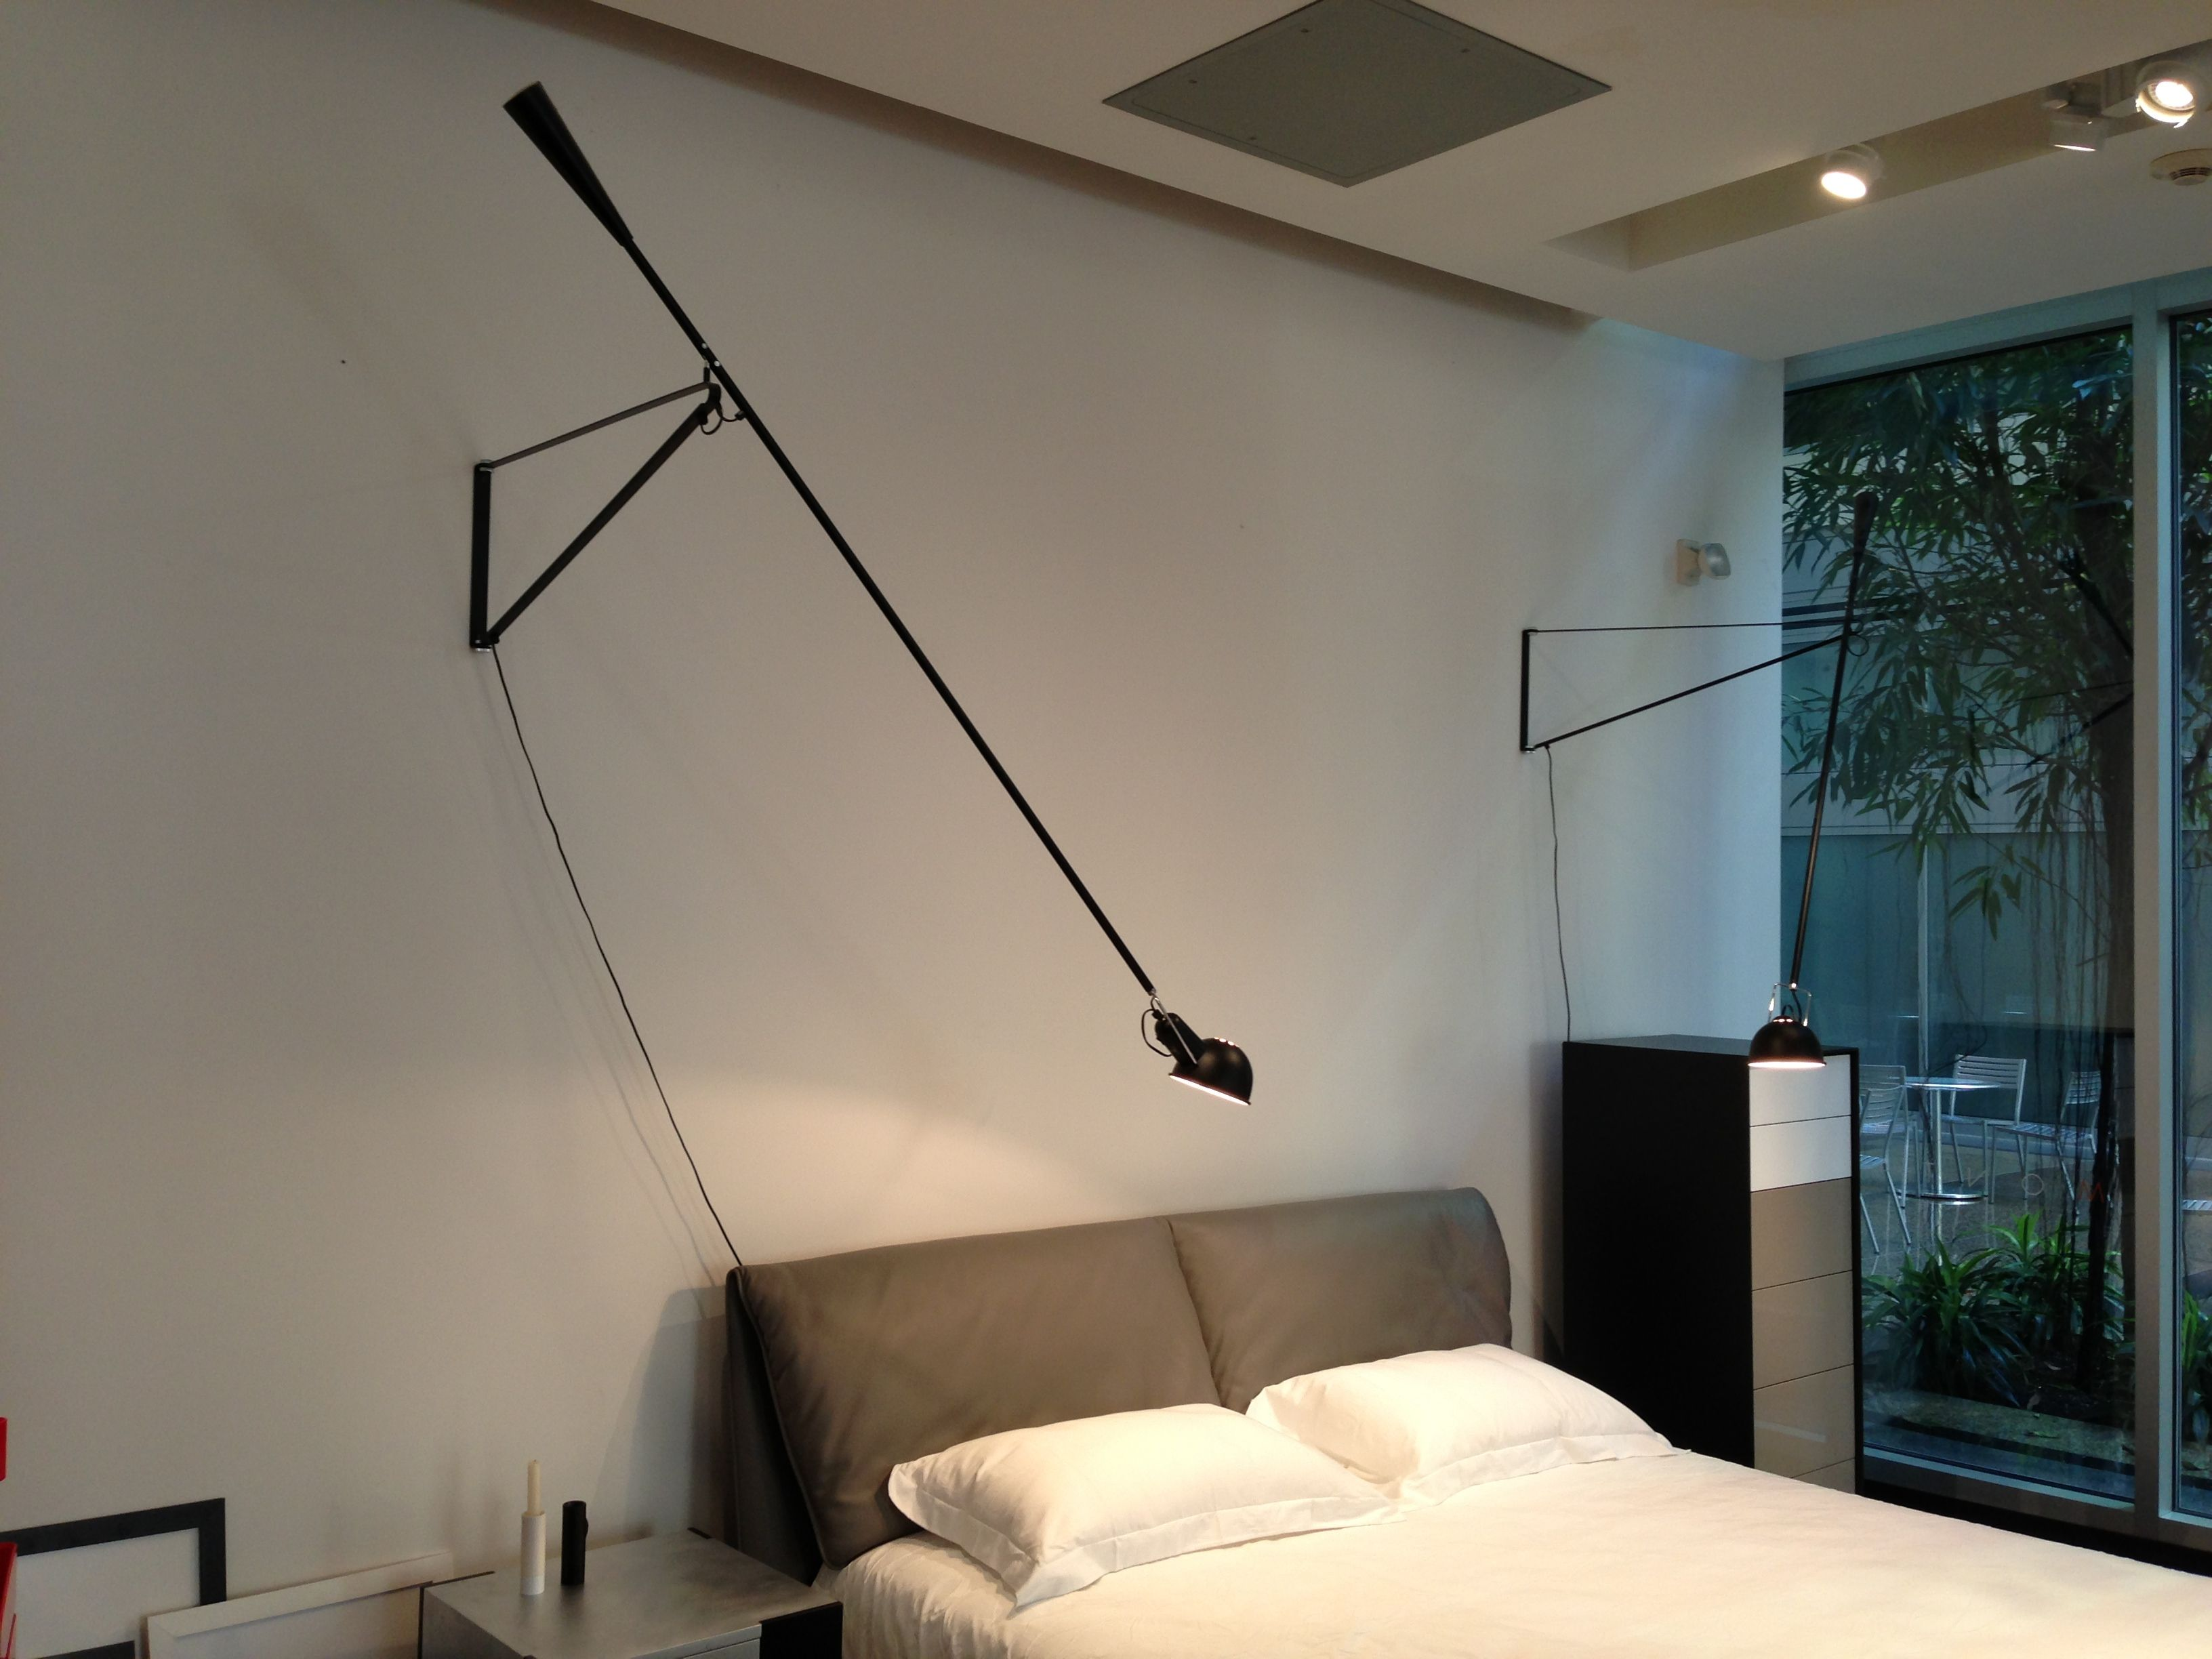 Flos 265 by paolo rizzatto lighting lamp design pendant light